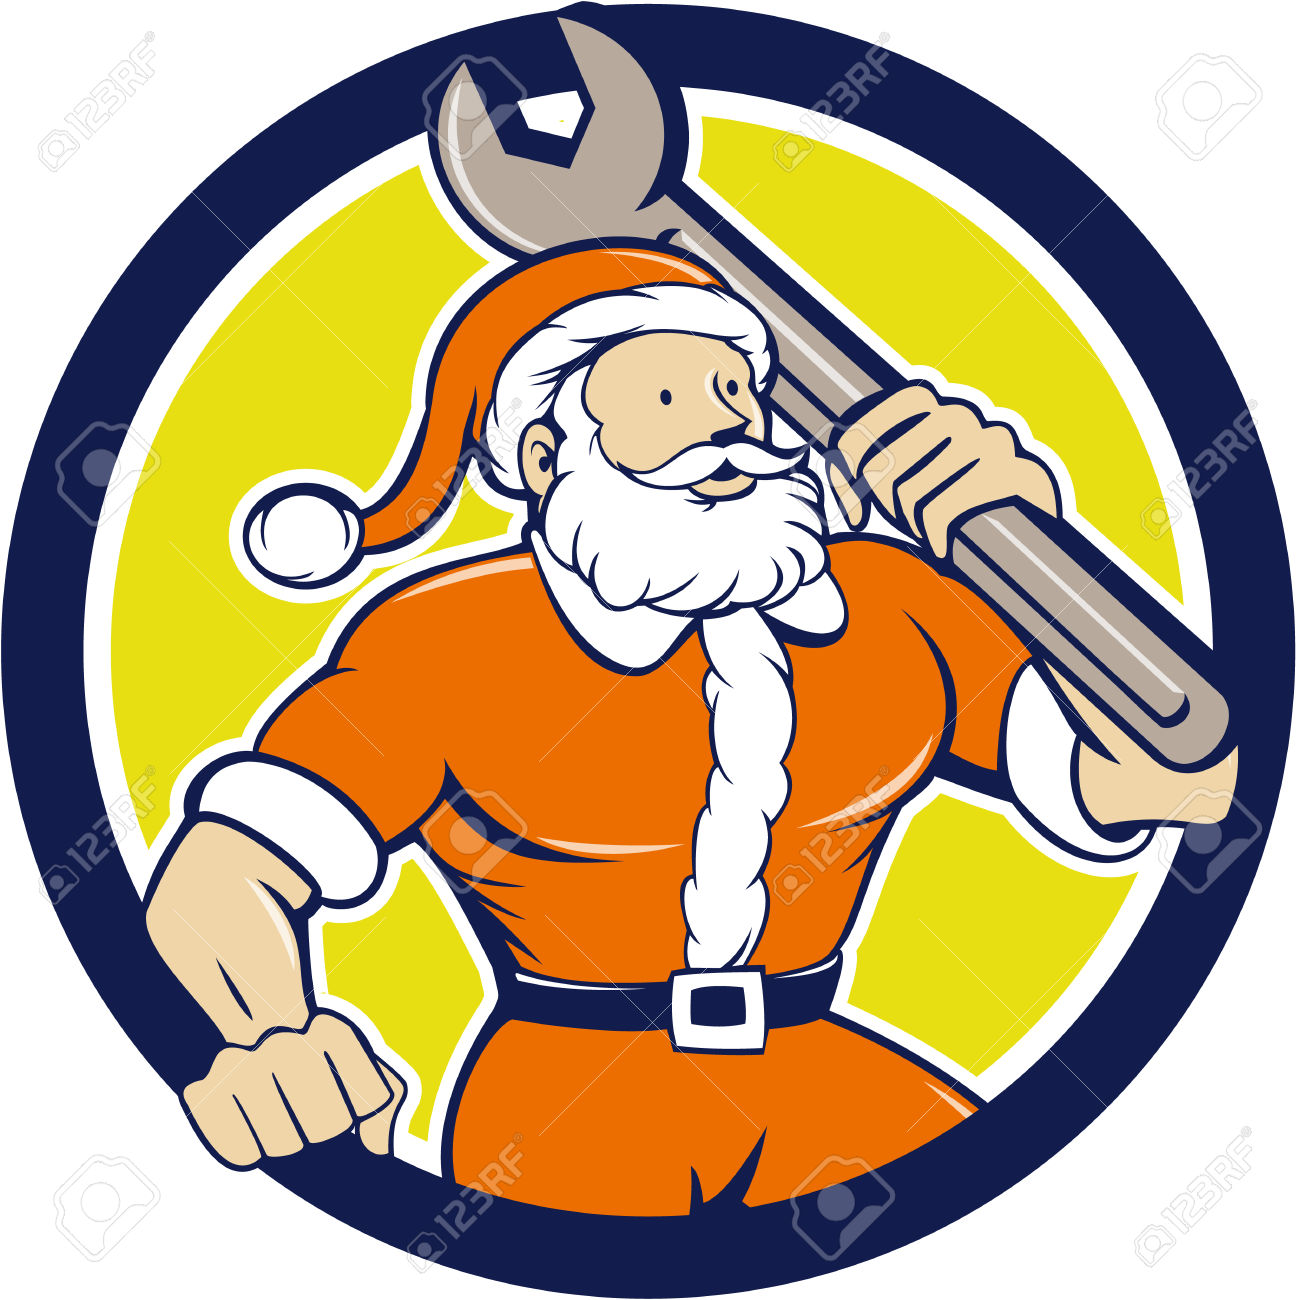 Mechanic Christmas Clipart.